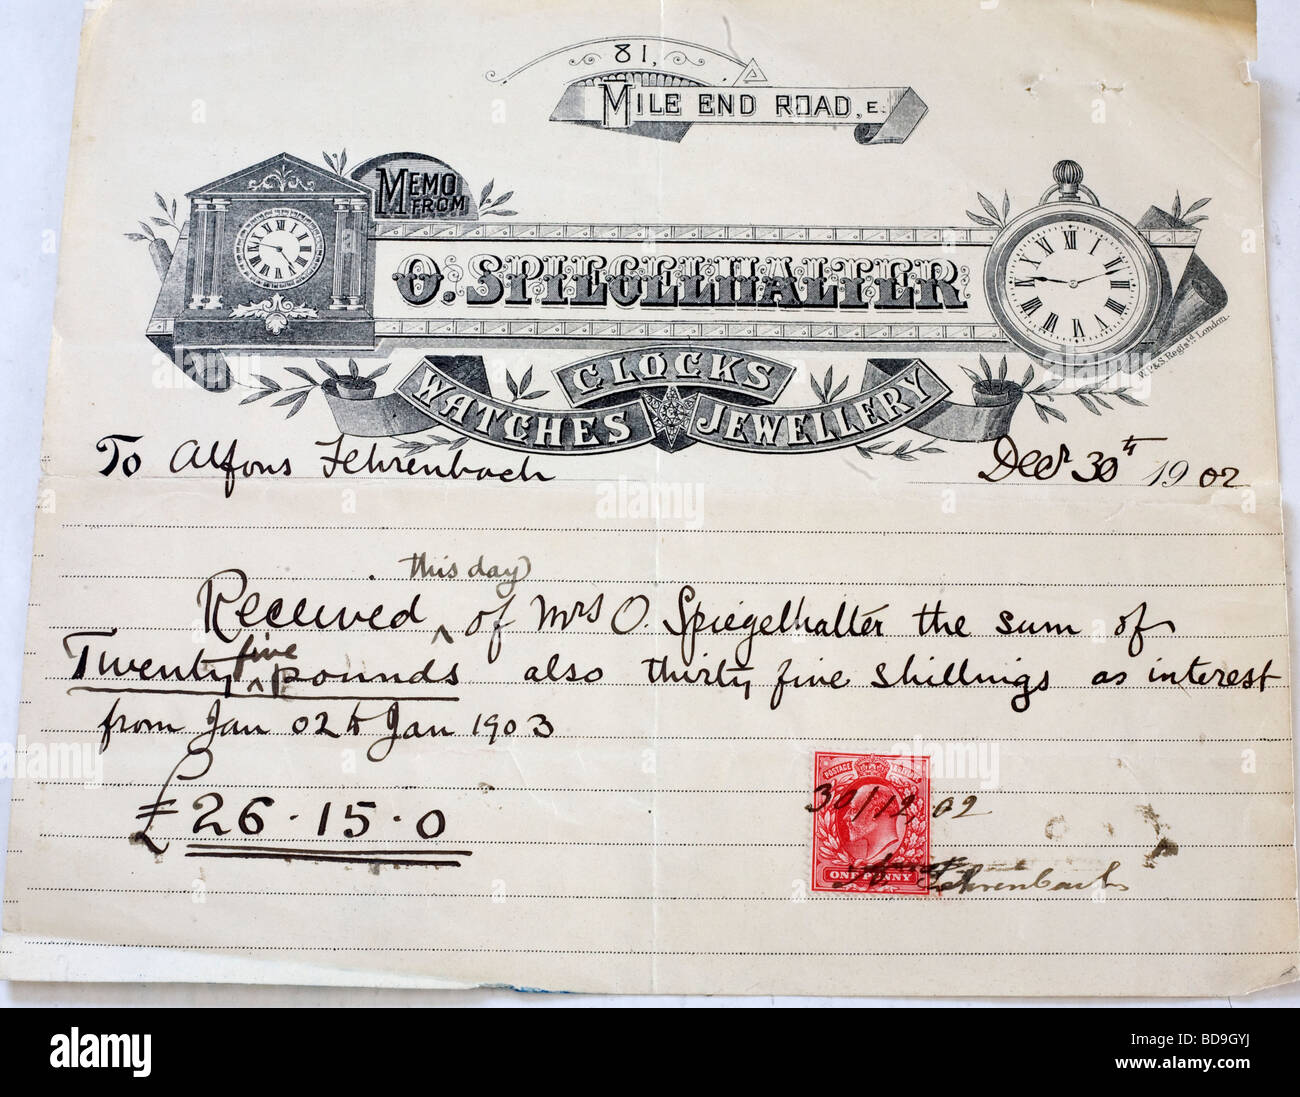 Receipt on paper of Mile End clockmaker and jeweller Otto Spiegelhalter (deceased) dated 30 December 1902 - Stock Image